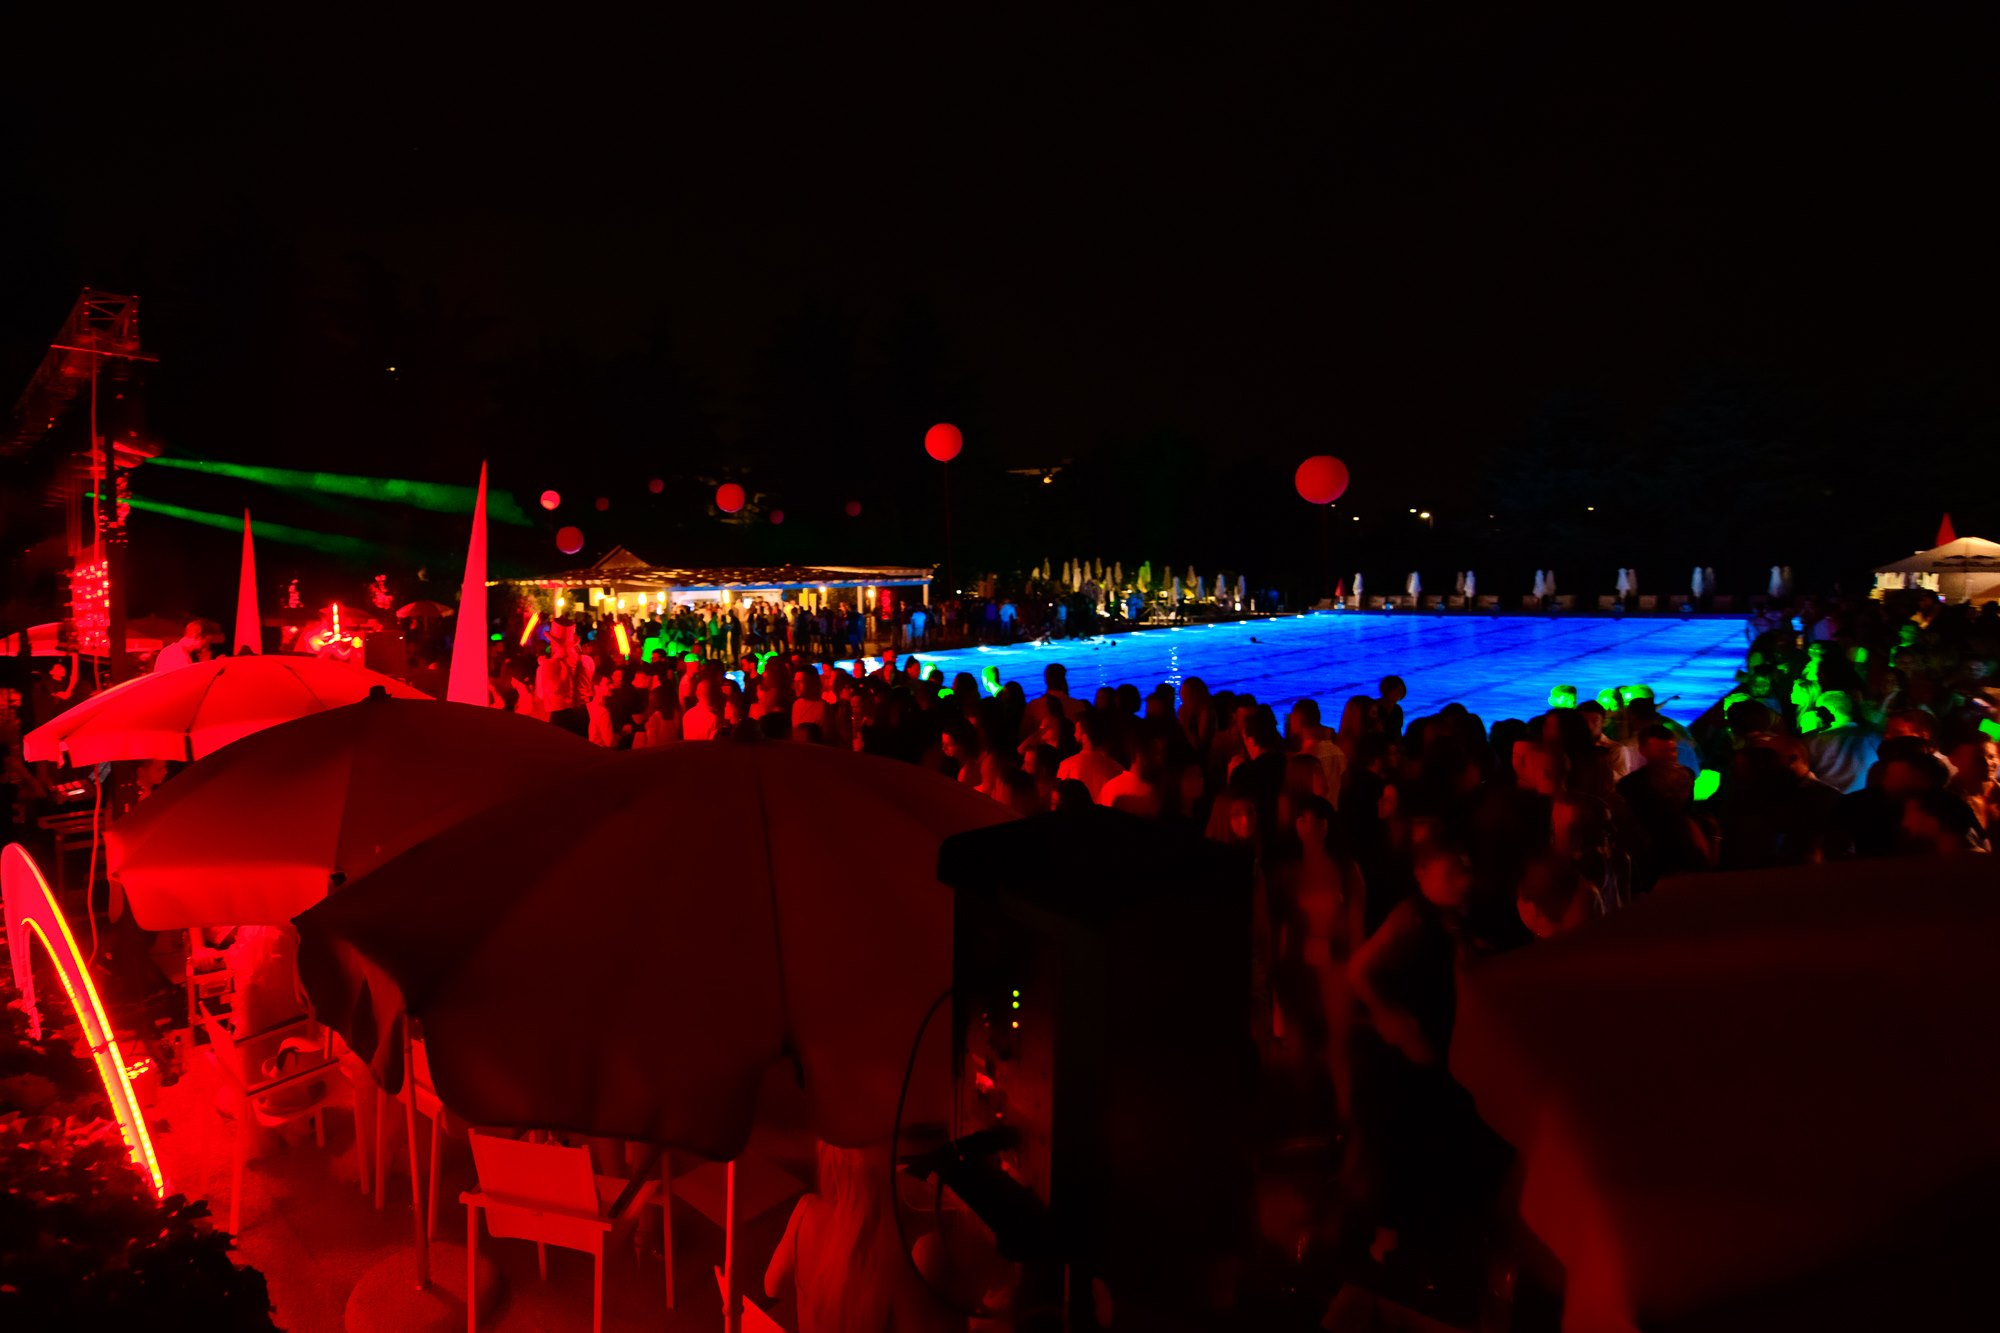 Pool Party at Harbour Club | Rouge Carrousel | YOUparti